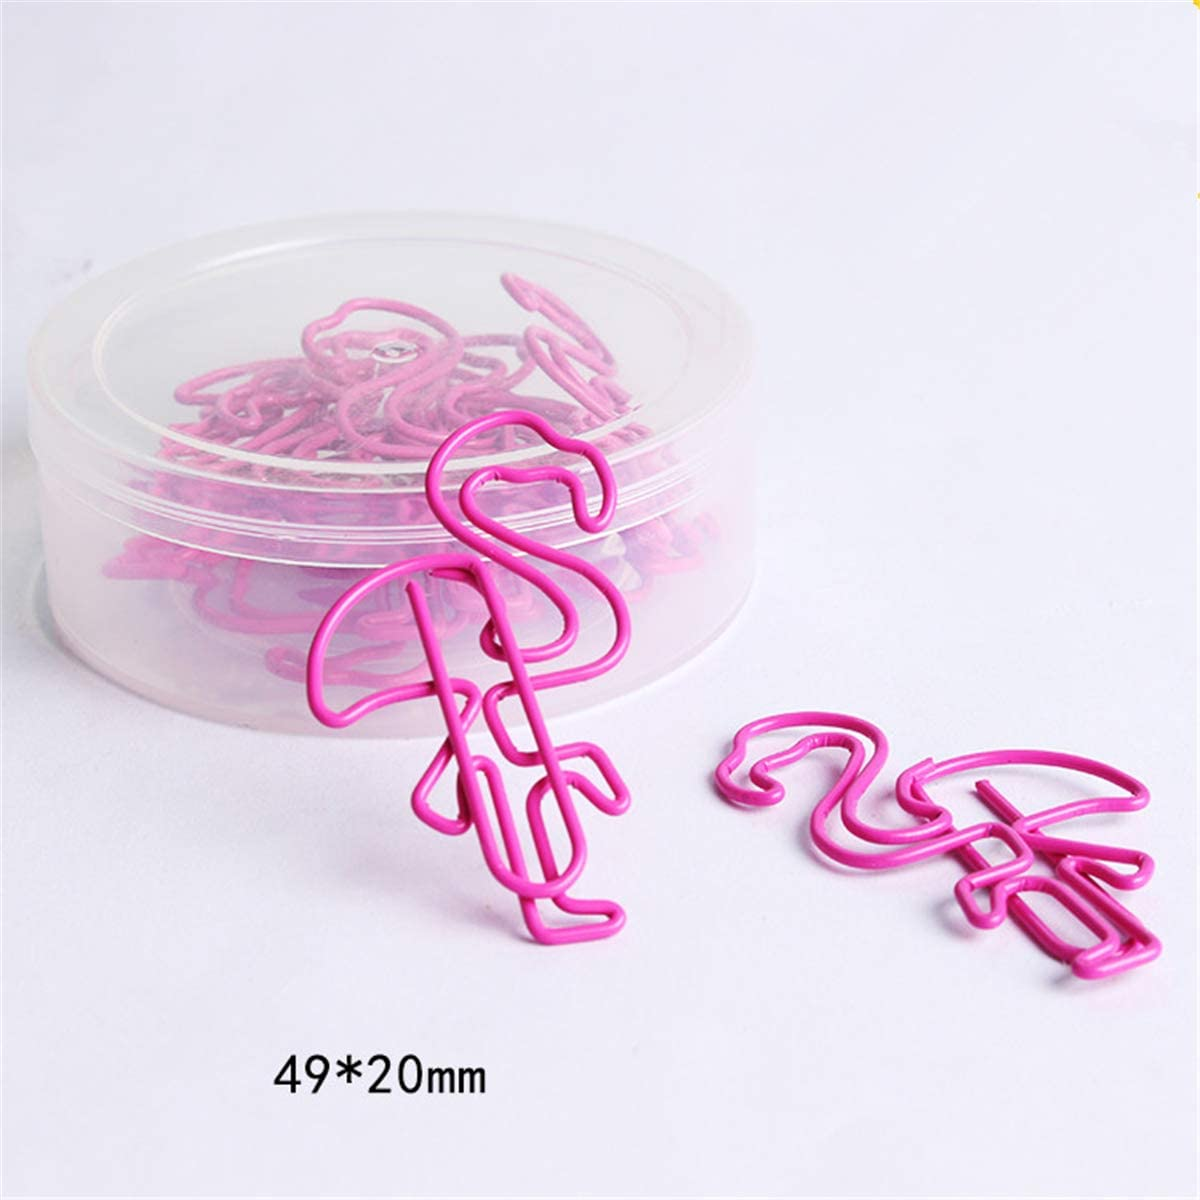 Cute Paper Clips Cartoon Pink Flamingo Shaped PaperClips for Office Supplies Wedding Women Girls Kids Students (20)